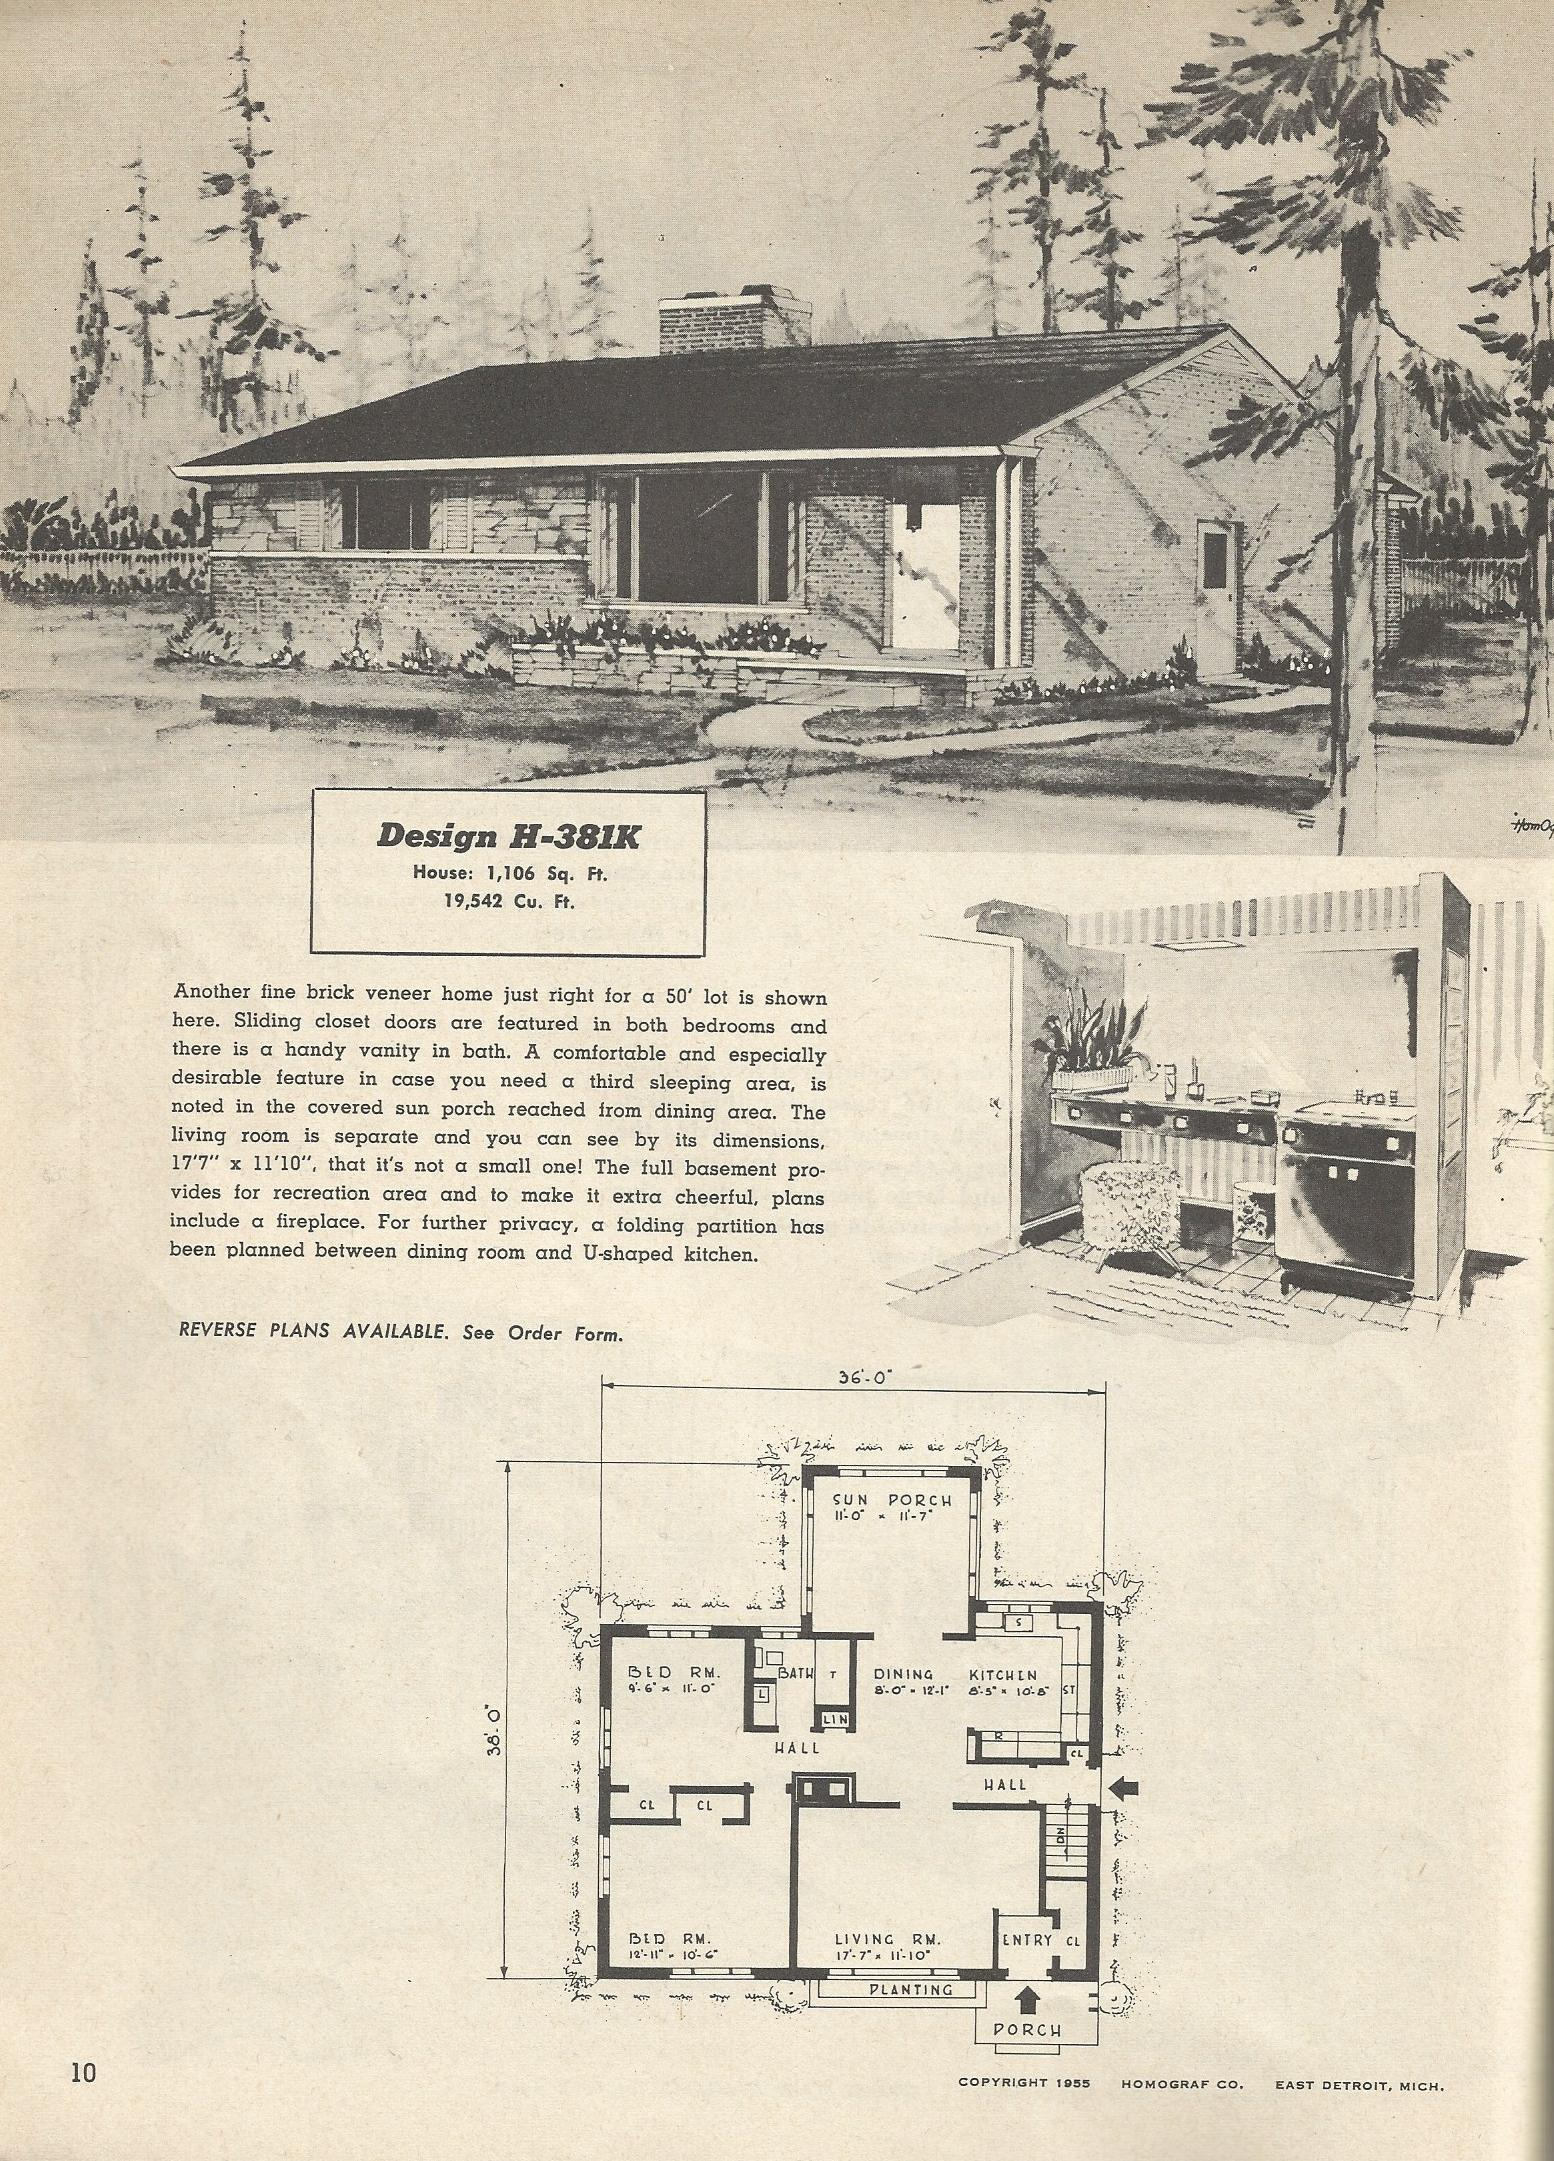 vintage house plans 381k?w=863 vintage house plans 381k antique alter ego,House Plans 1950s